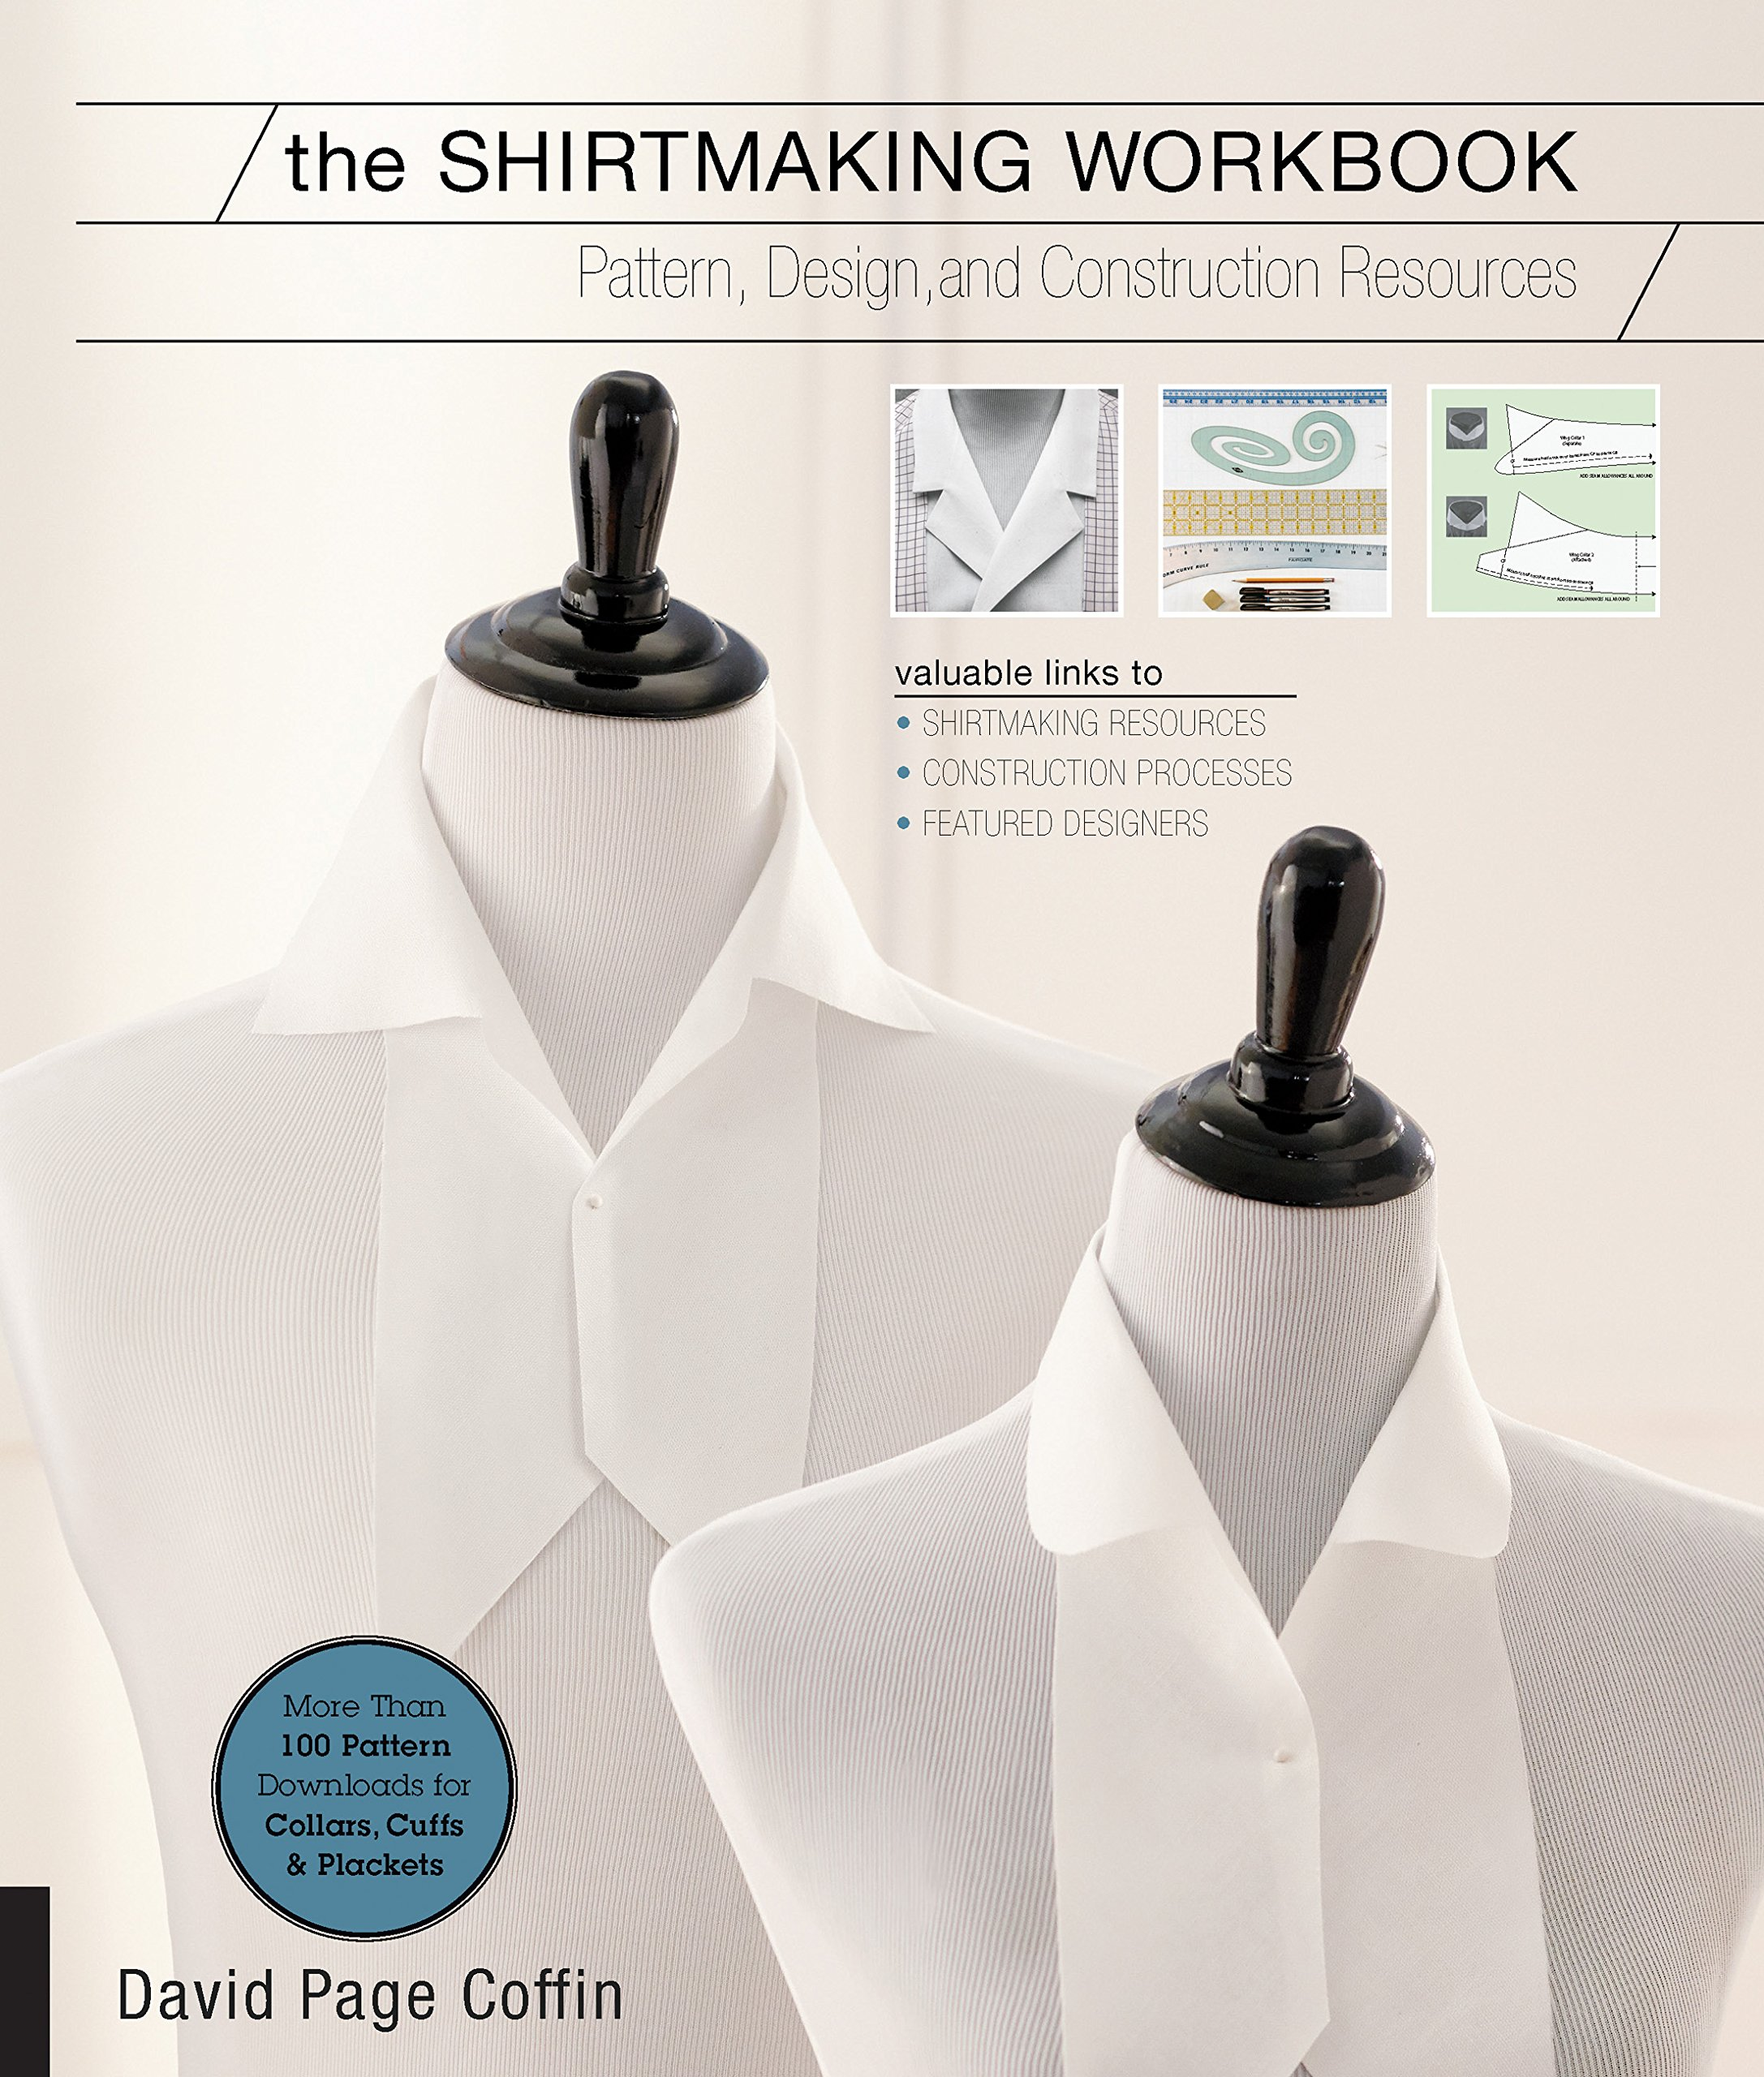 A favorite reference: David Coffin Page's 'Shirtmaking Workbook'.